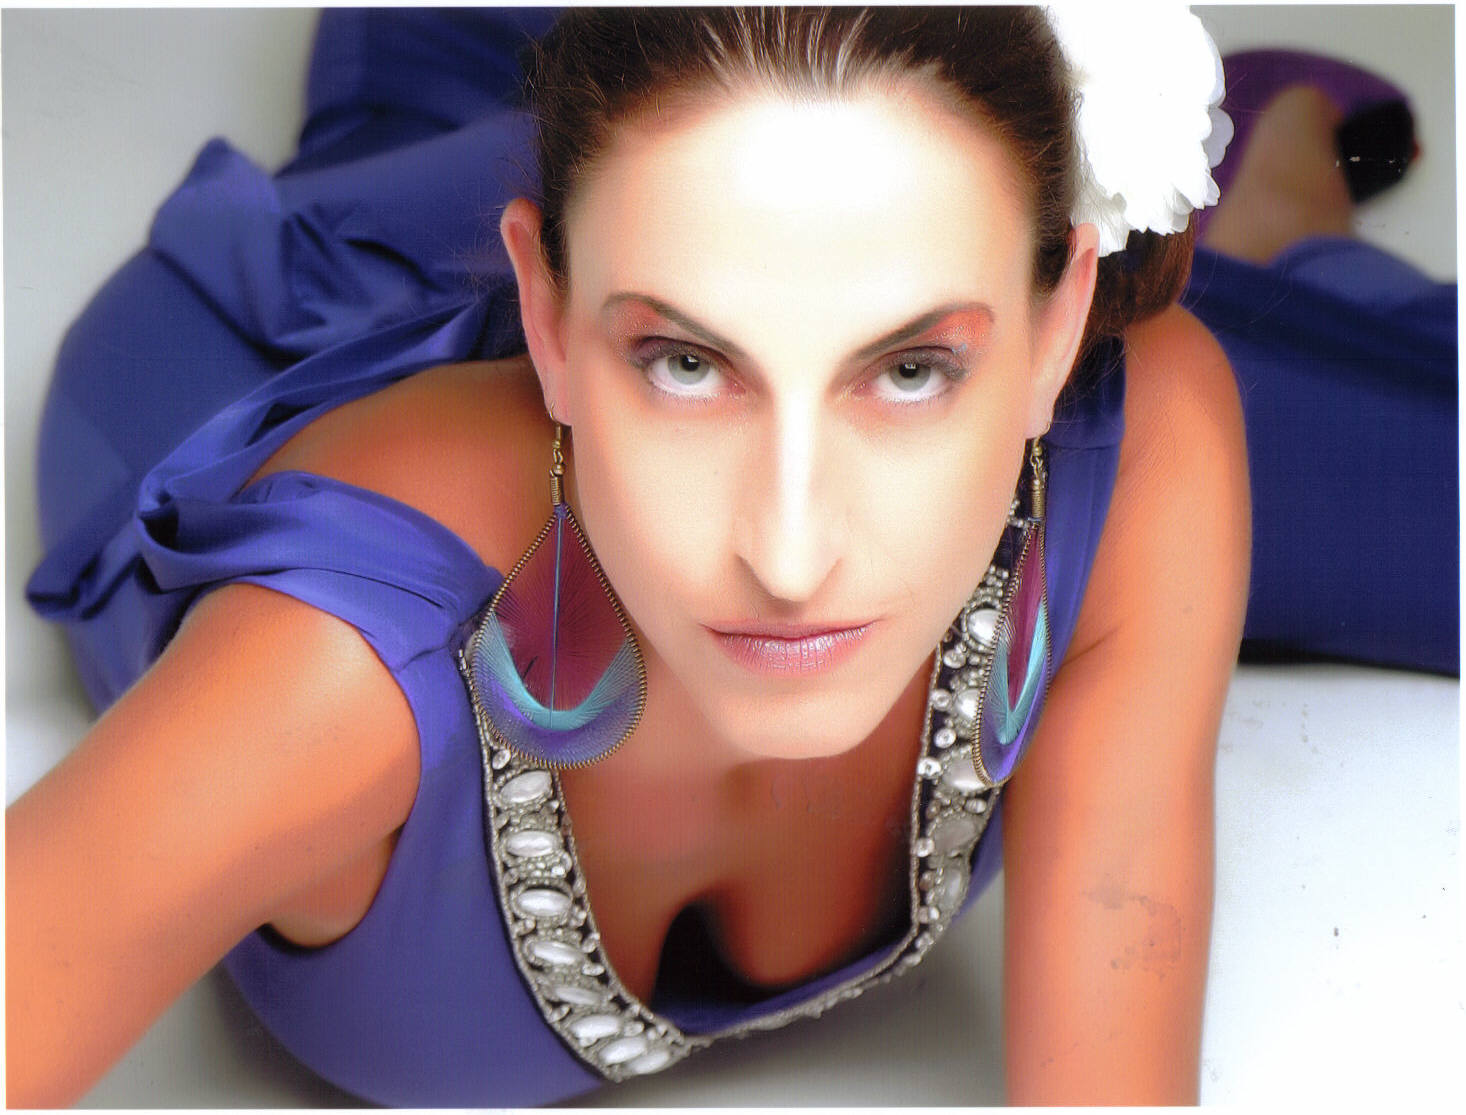 Over 20 yrs self employed promotional model, actress, childrens entertainer